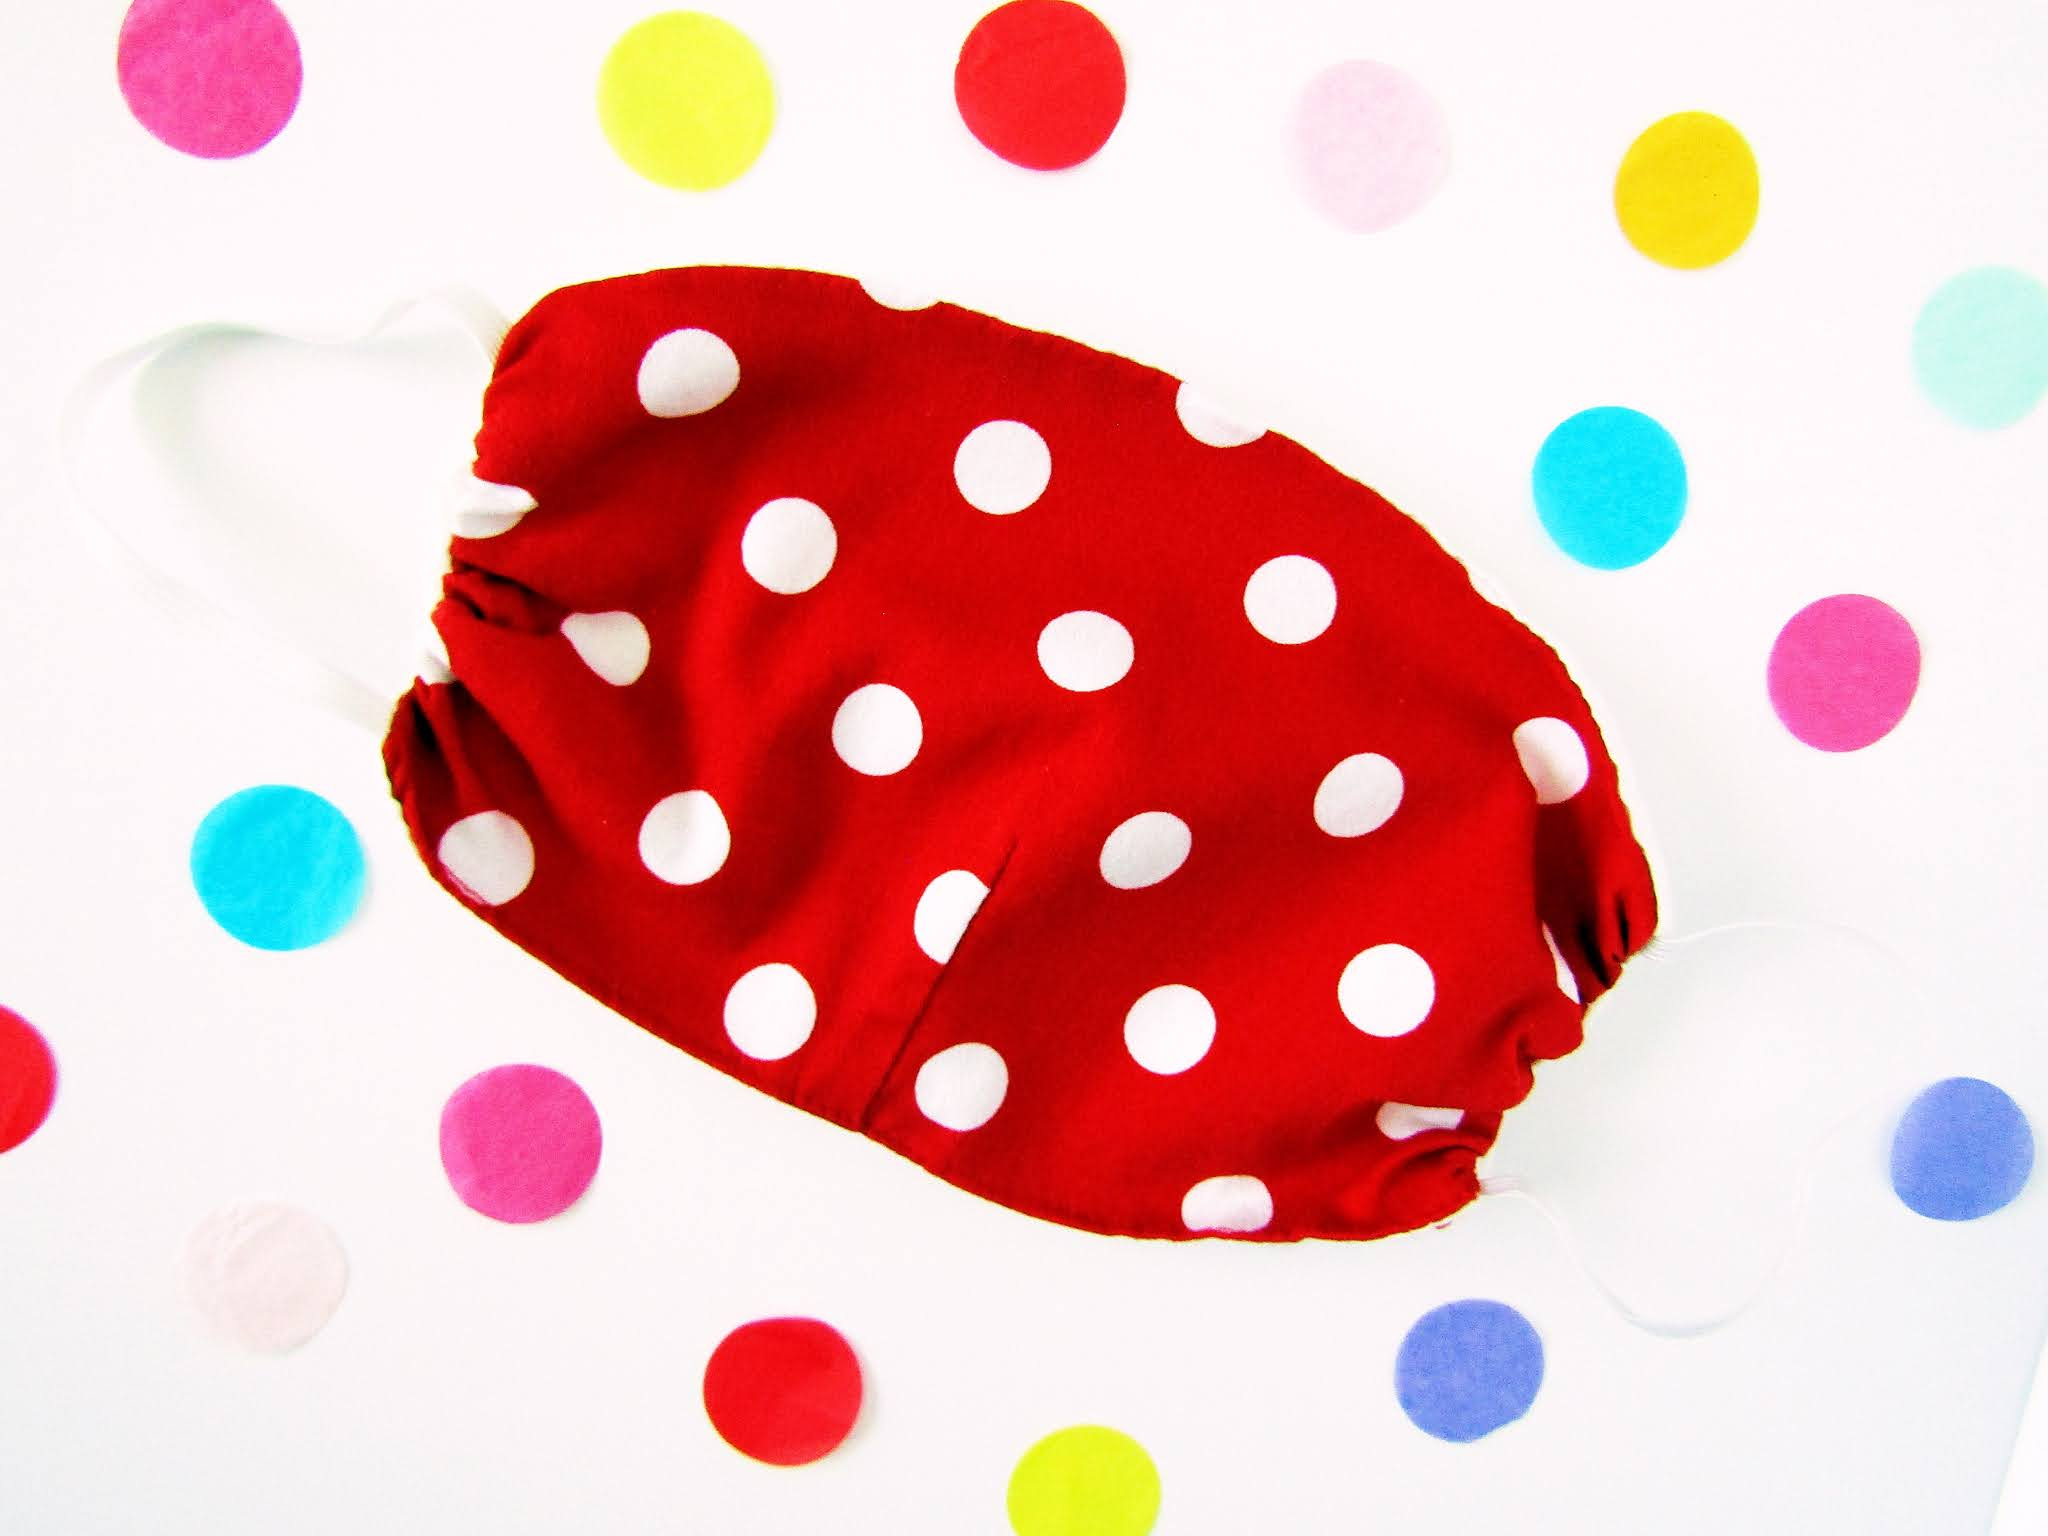 A flatlay photo of a red and white polka dot face covering from Lady Vintage, on a white background surrounded by colourful round confetti.